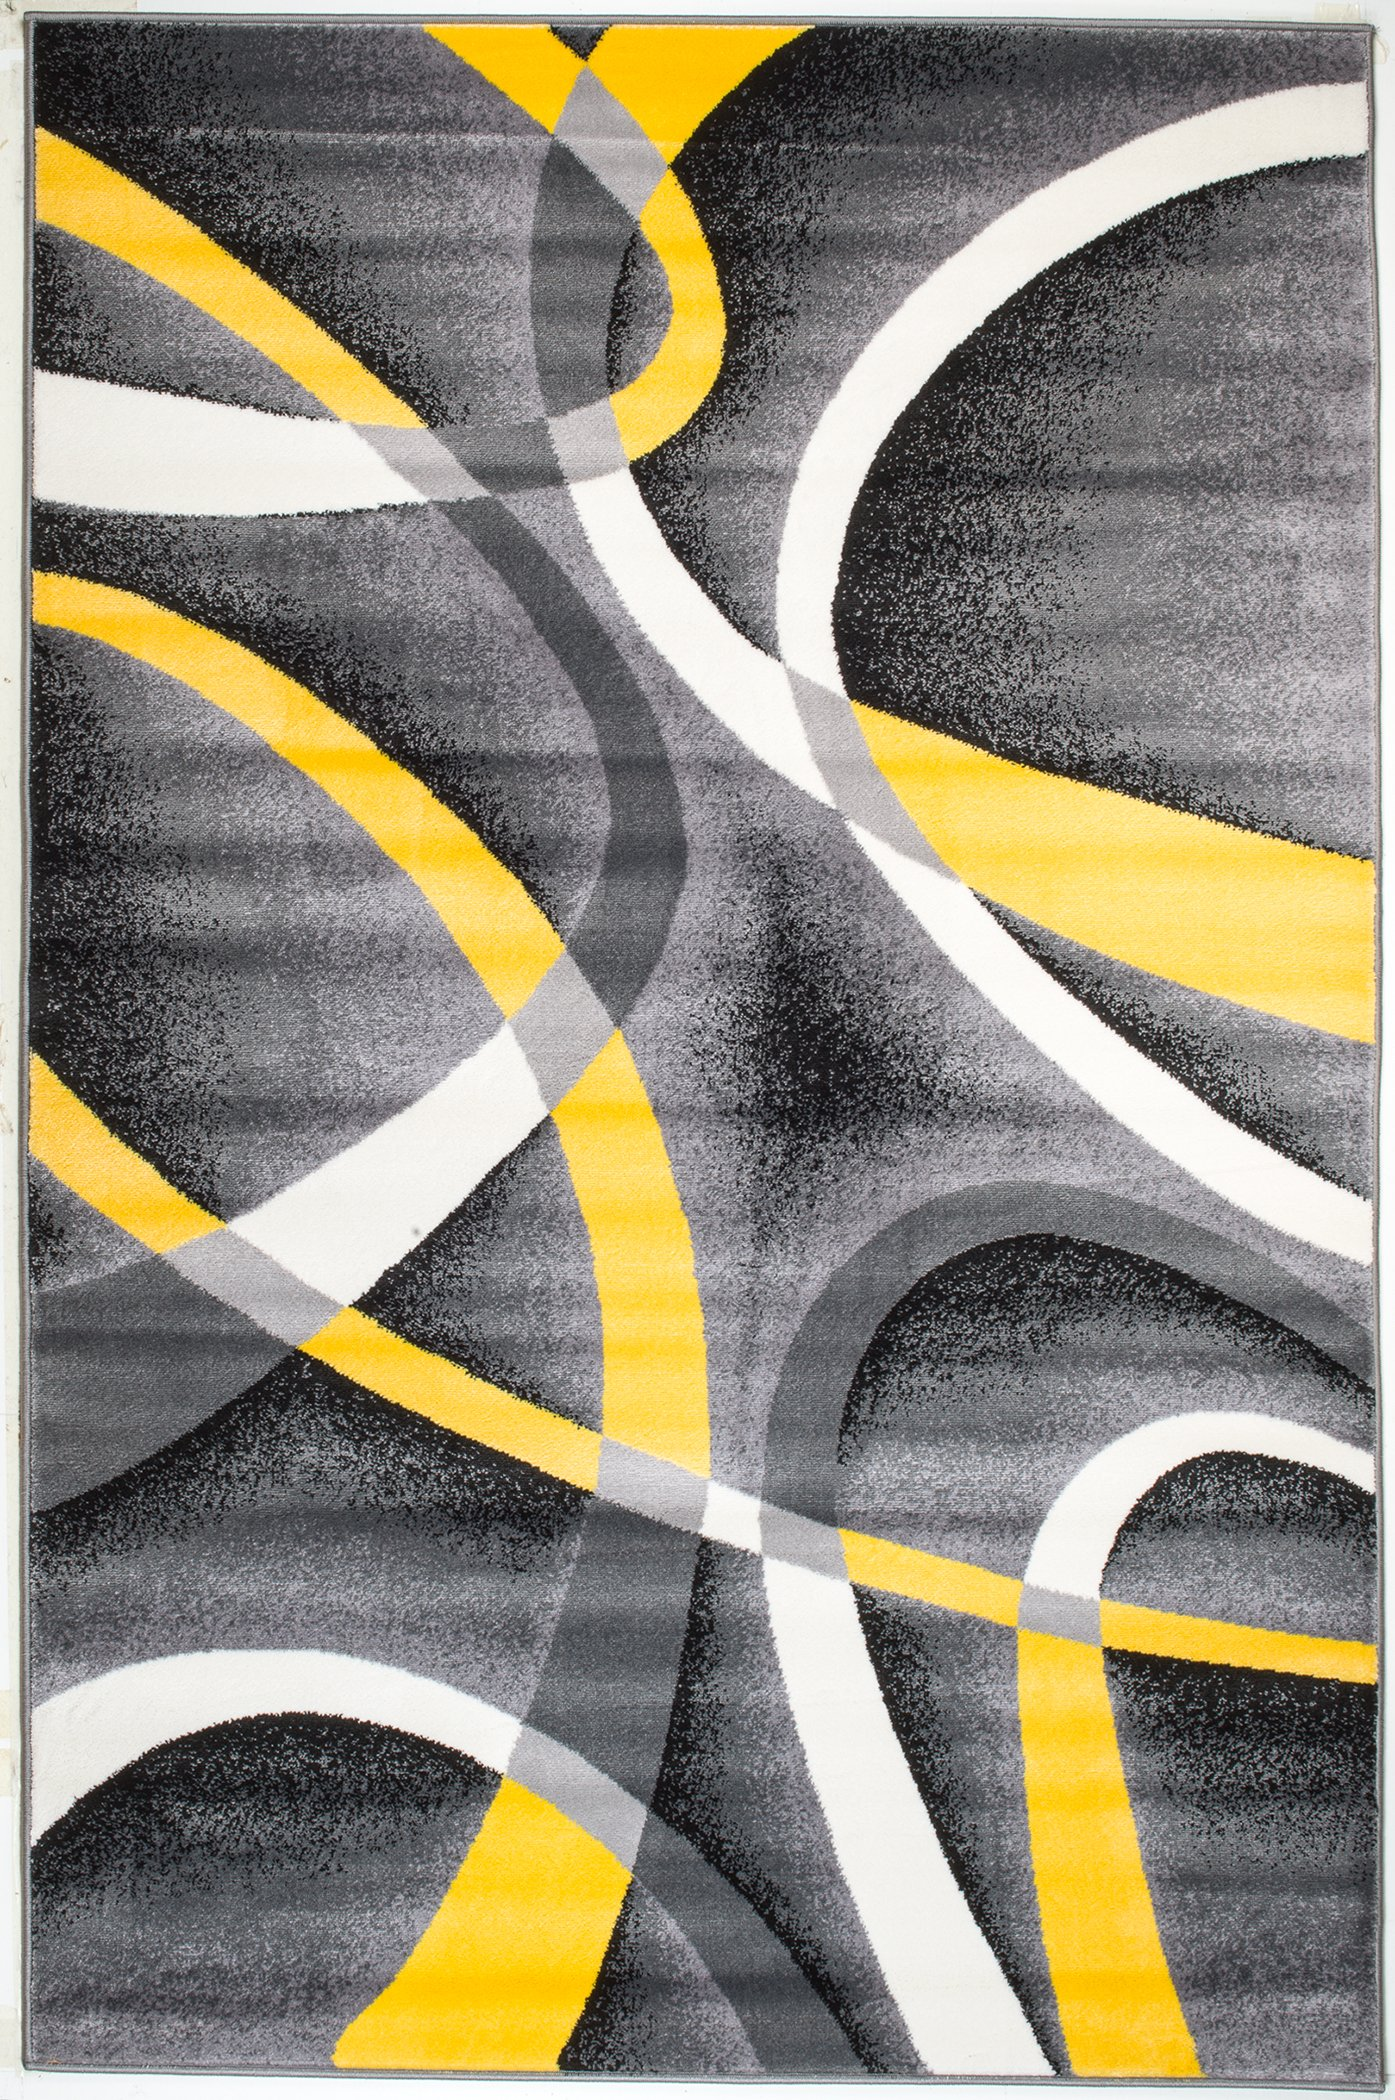 Summit UQ-ABE2-JR2X 21 New Yellow Grey Area Rug Modern Abstract Many Sizes Available , DOOR MAT 22 inch x 35 inch